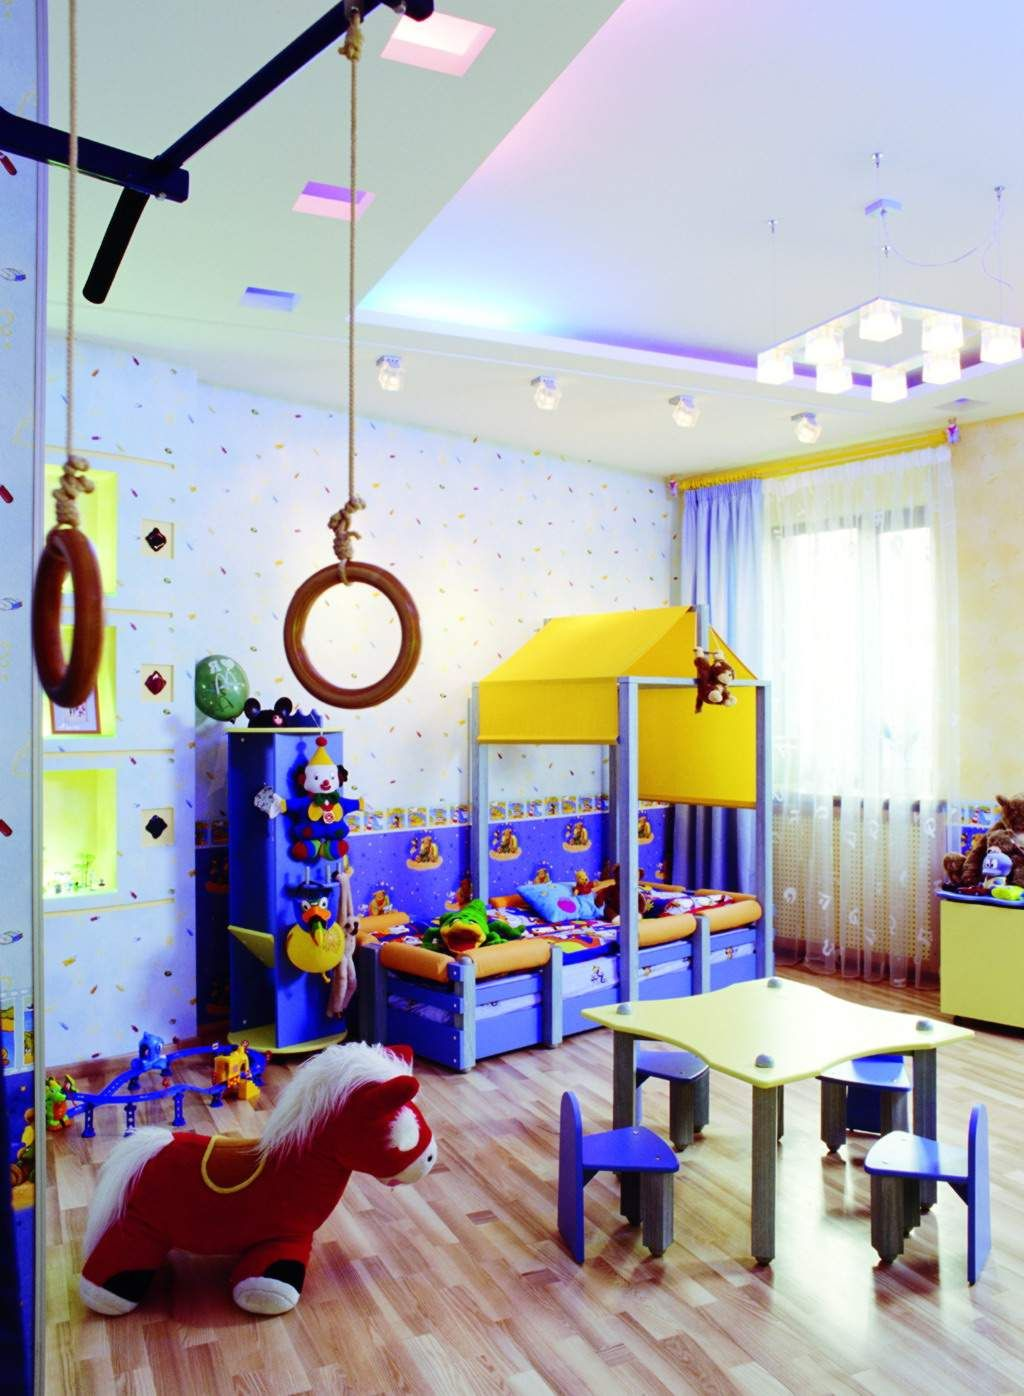 Kids bedroom kids room interior design with play and learn for Children bedroom design